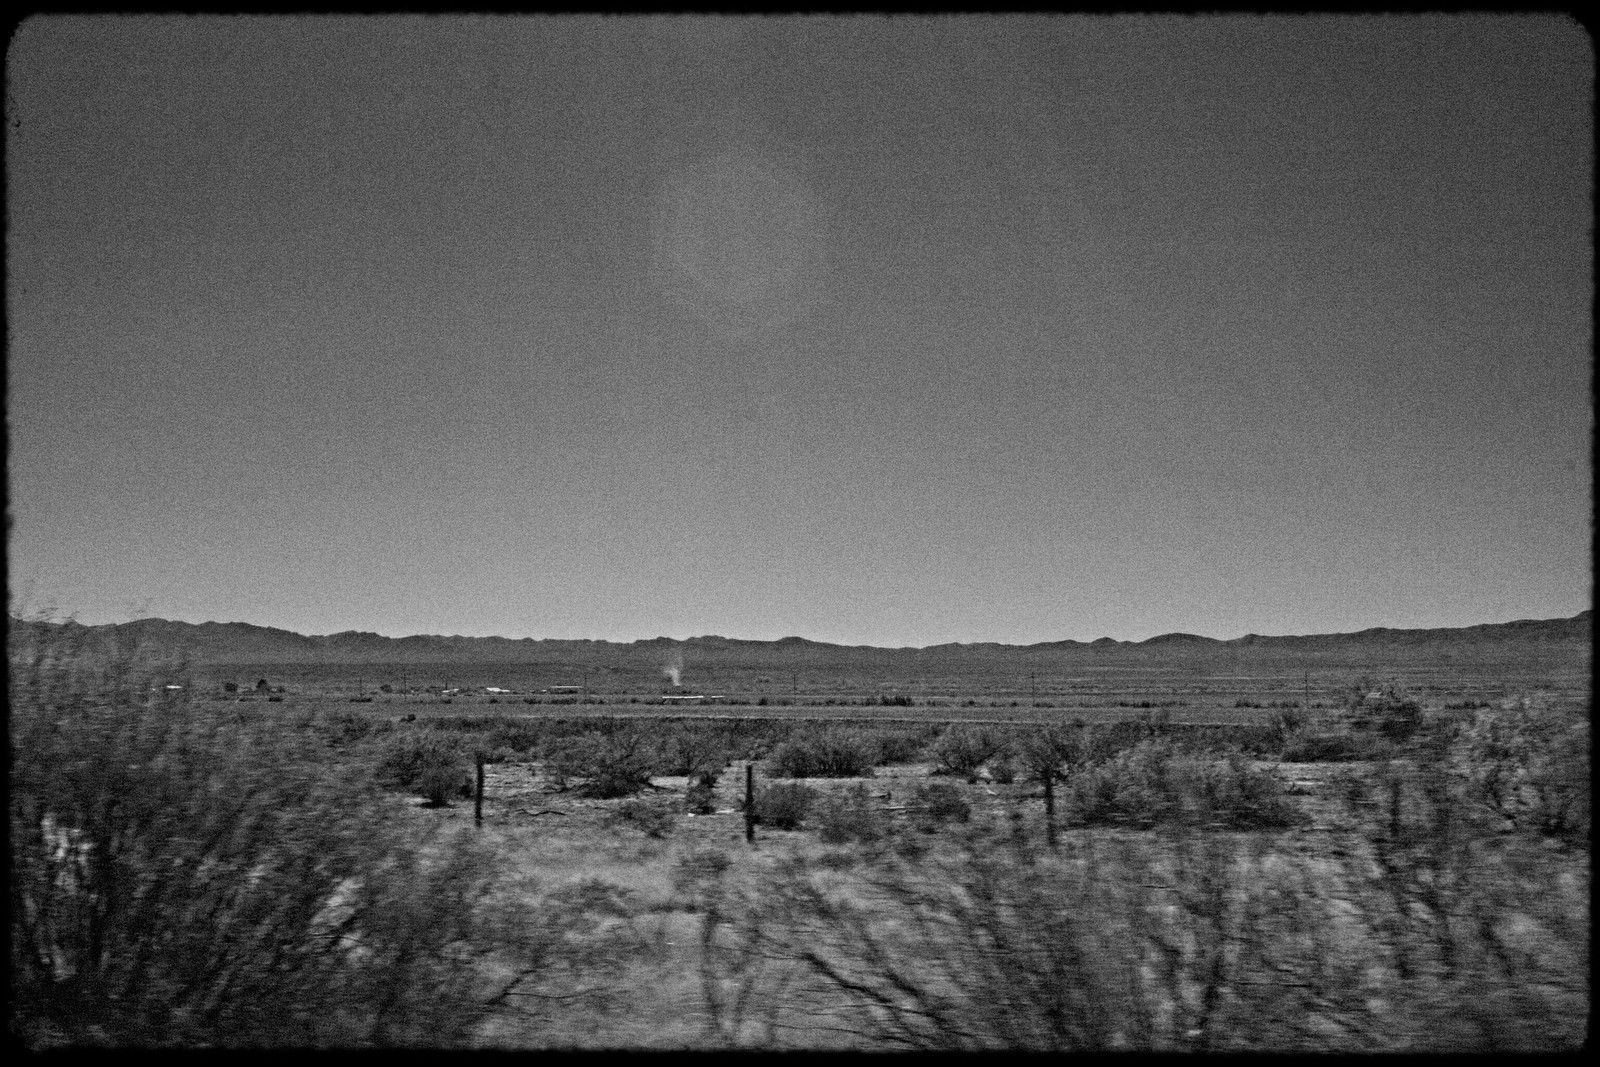 Outside El Paso, Texas, 2006